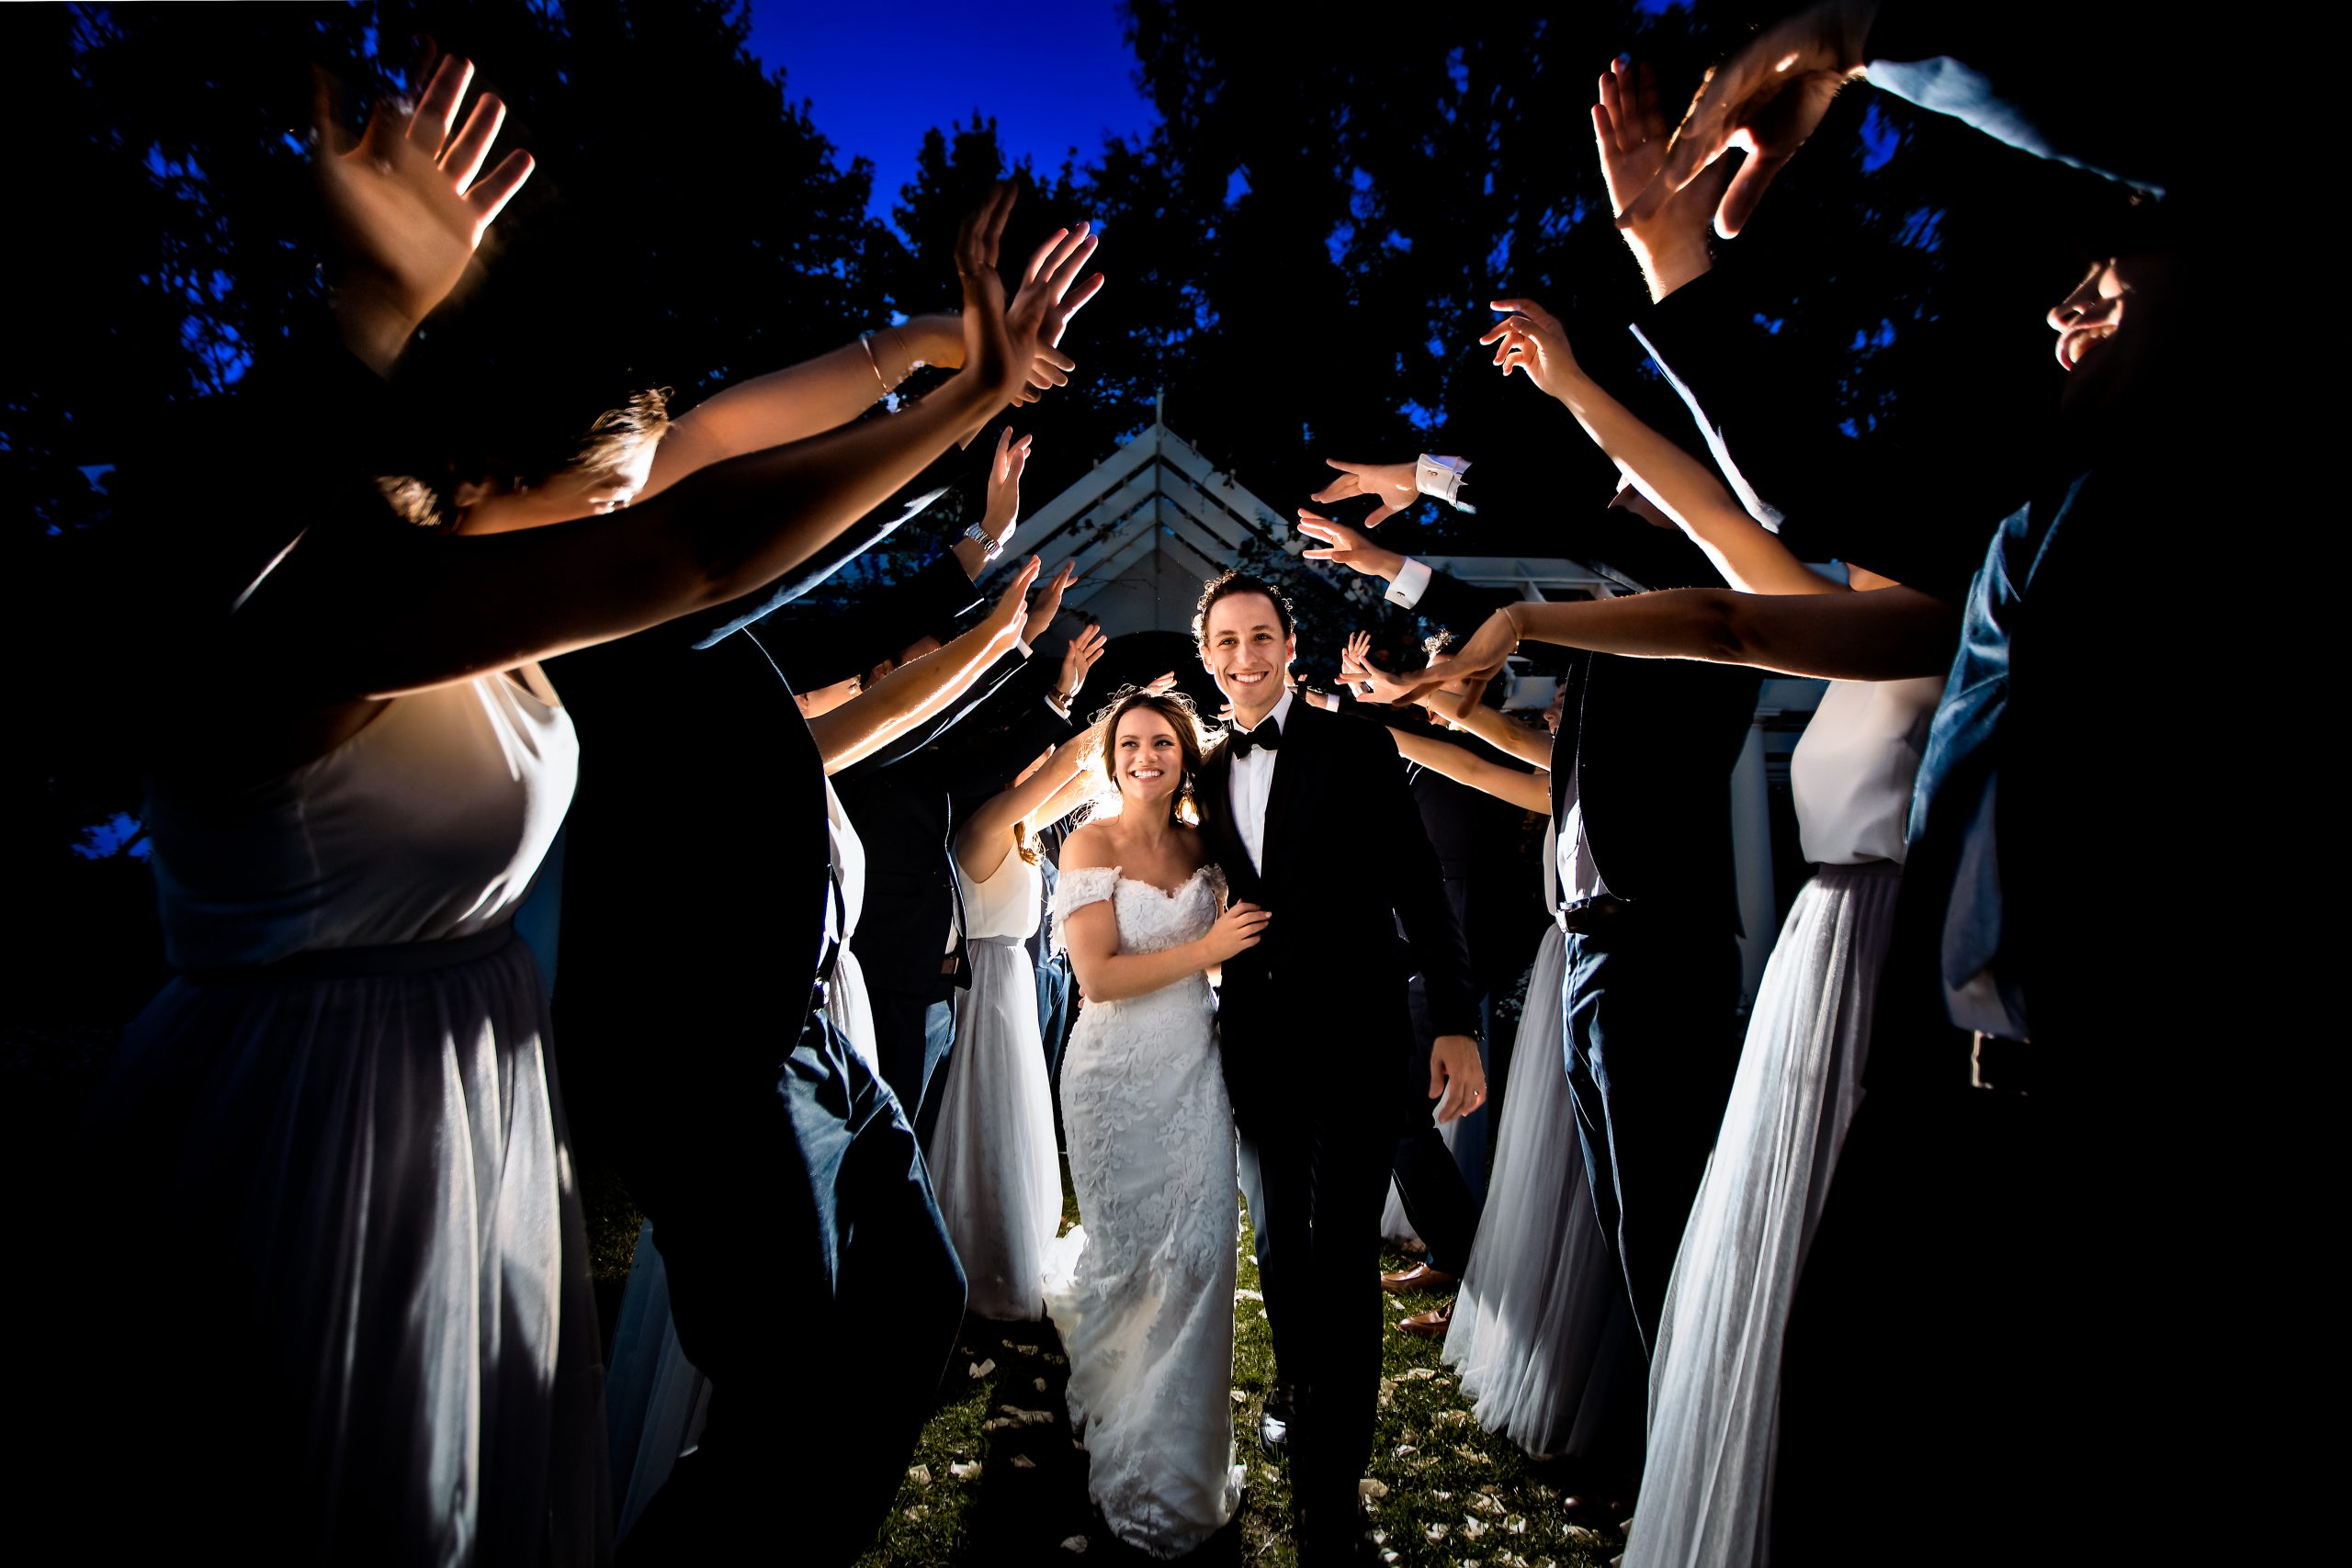 Weddings guests raise their arms as the bride and groom walk back down the aisle